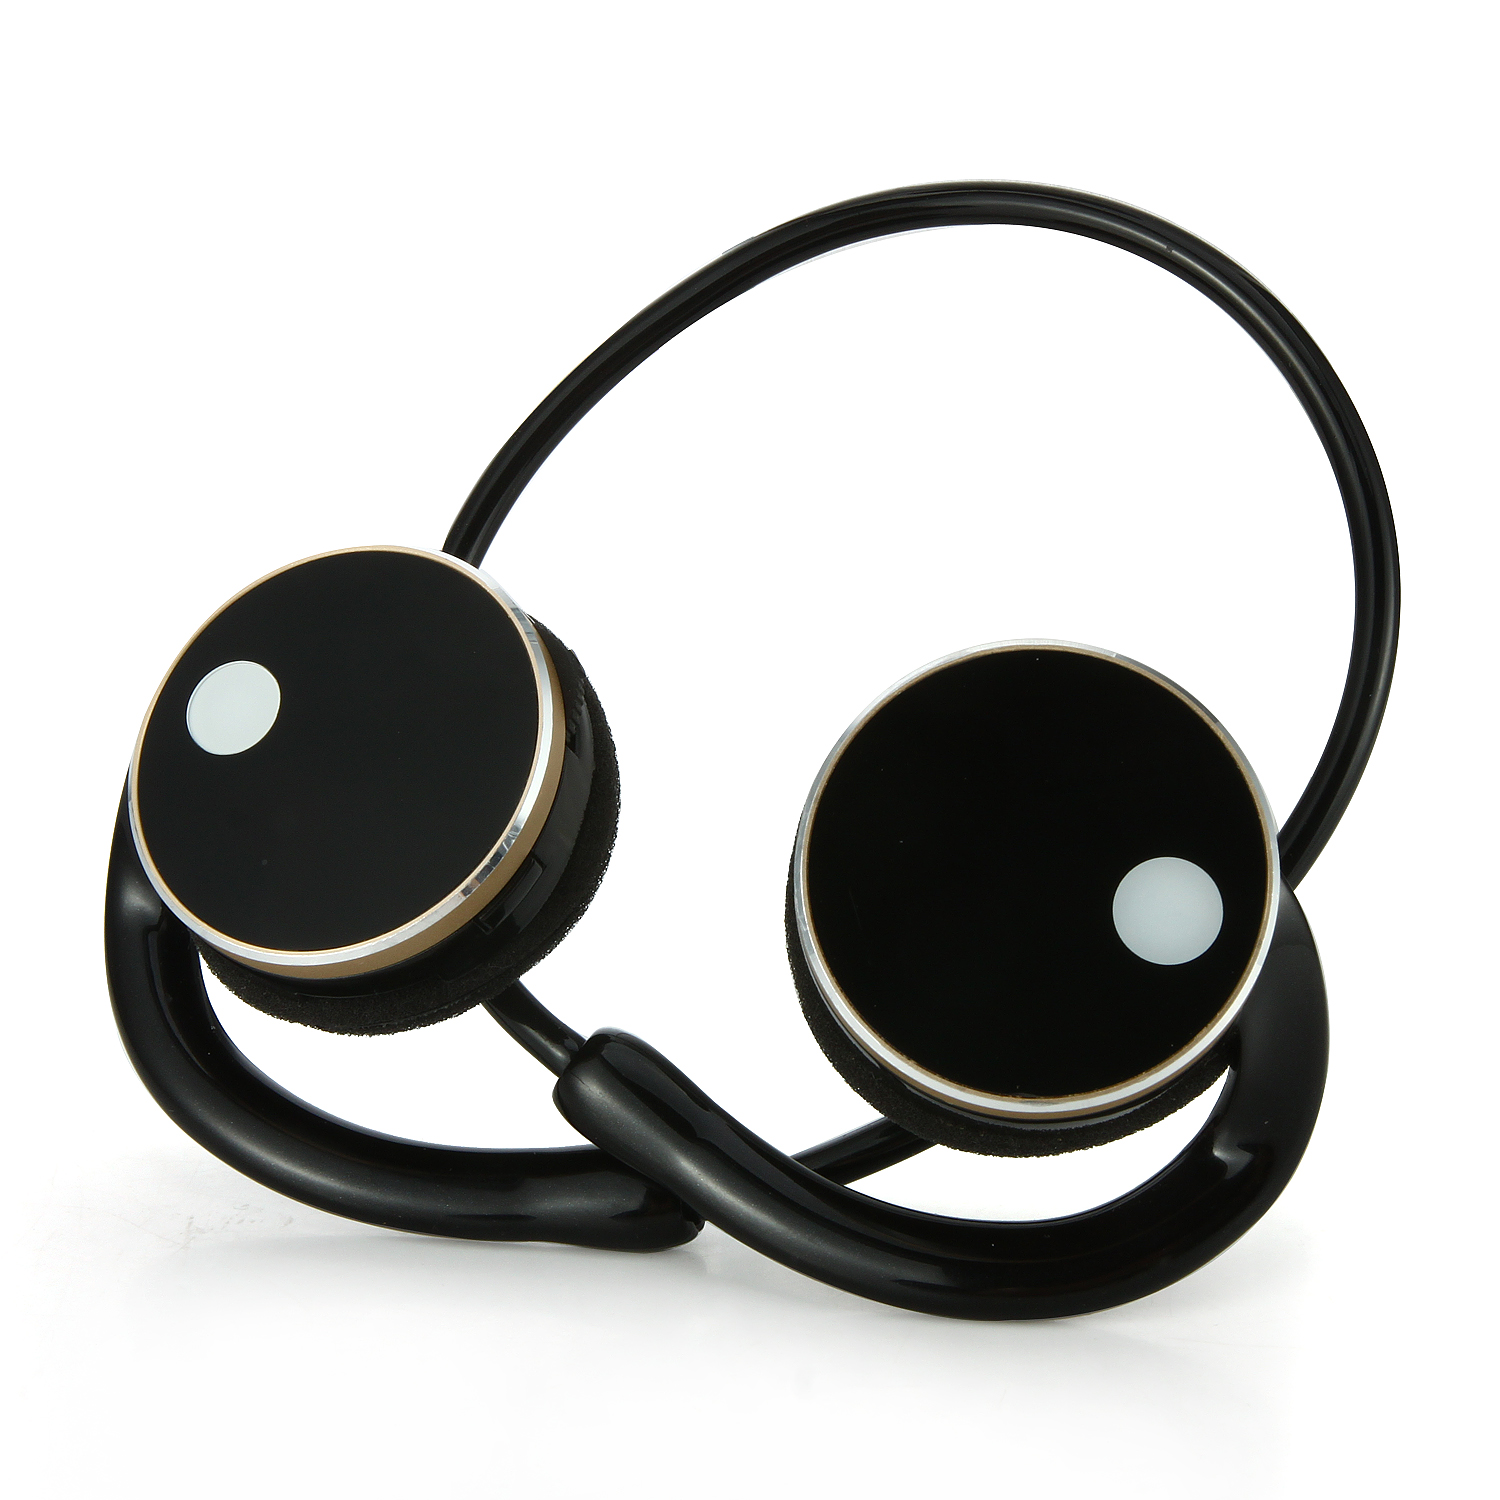 MeGoo2 Wireless Bluetooth Earclip Headphones with Handsfree Calling MP3 Pedometer Black